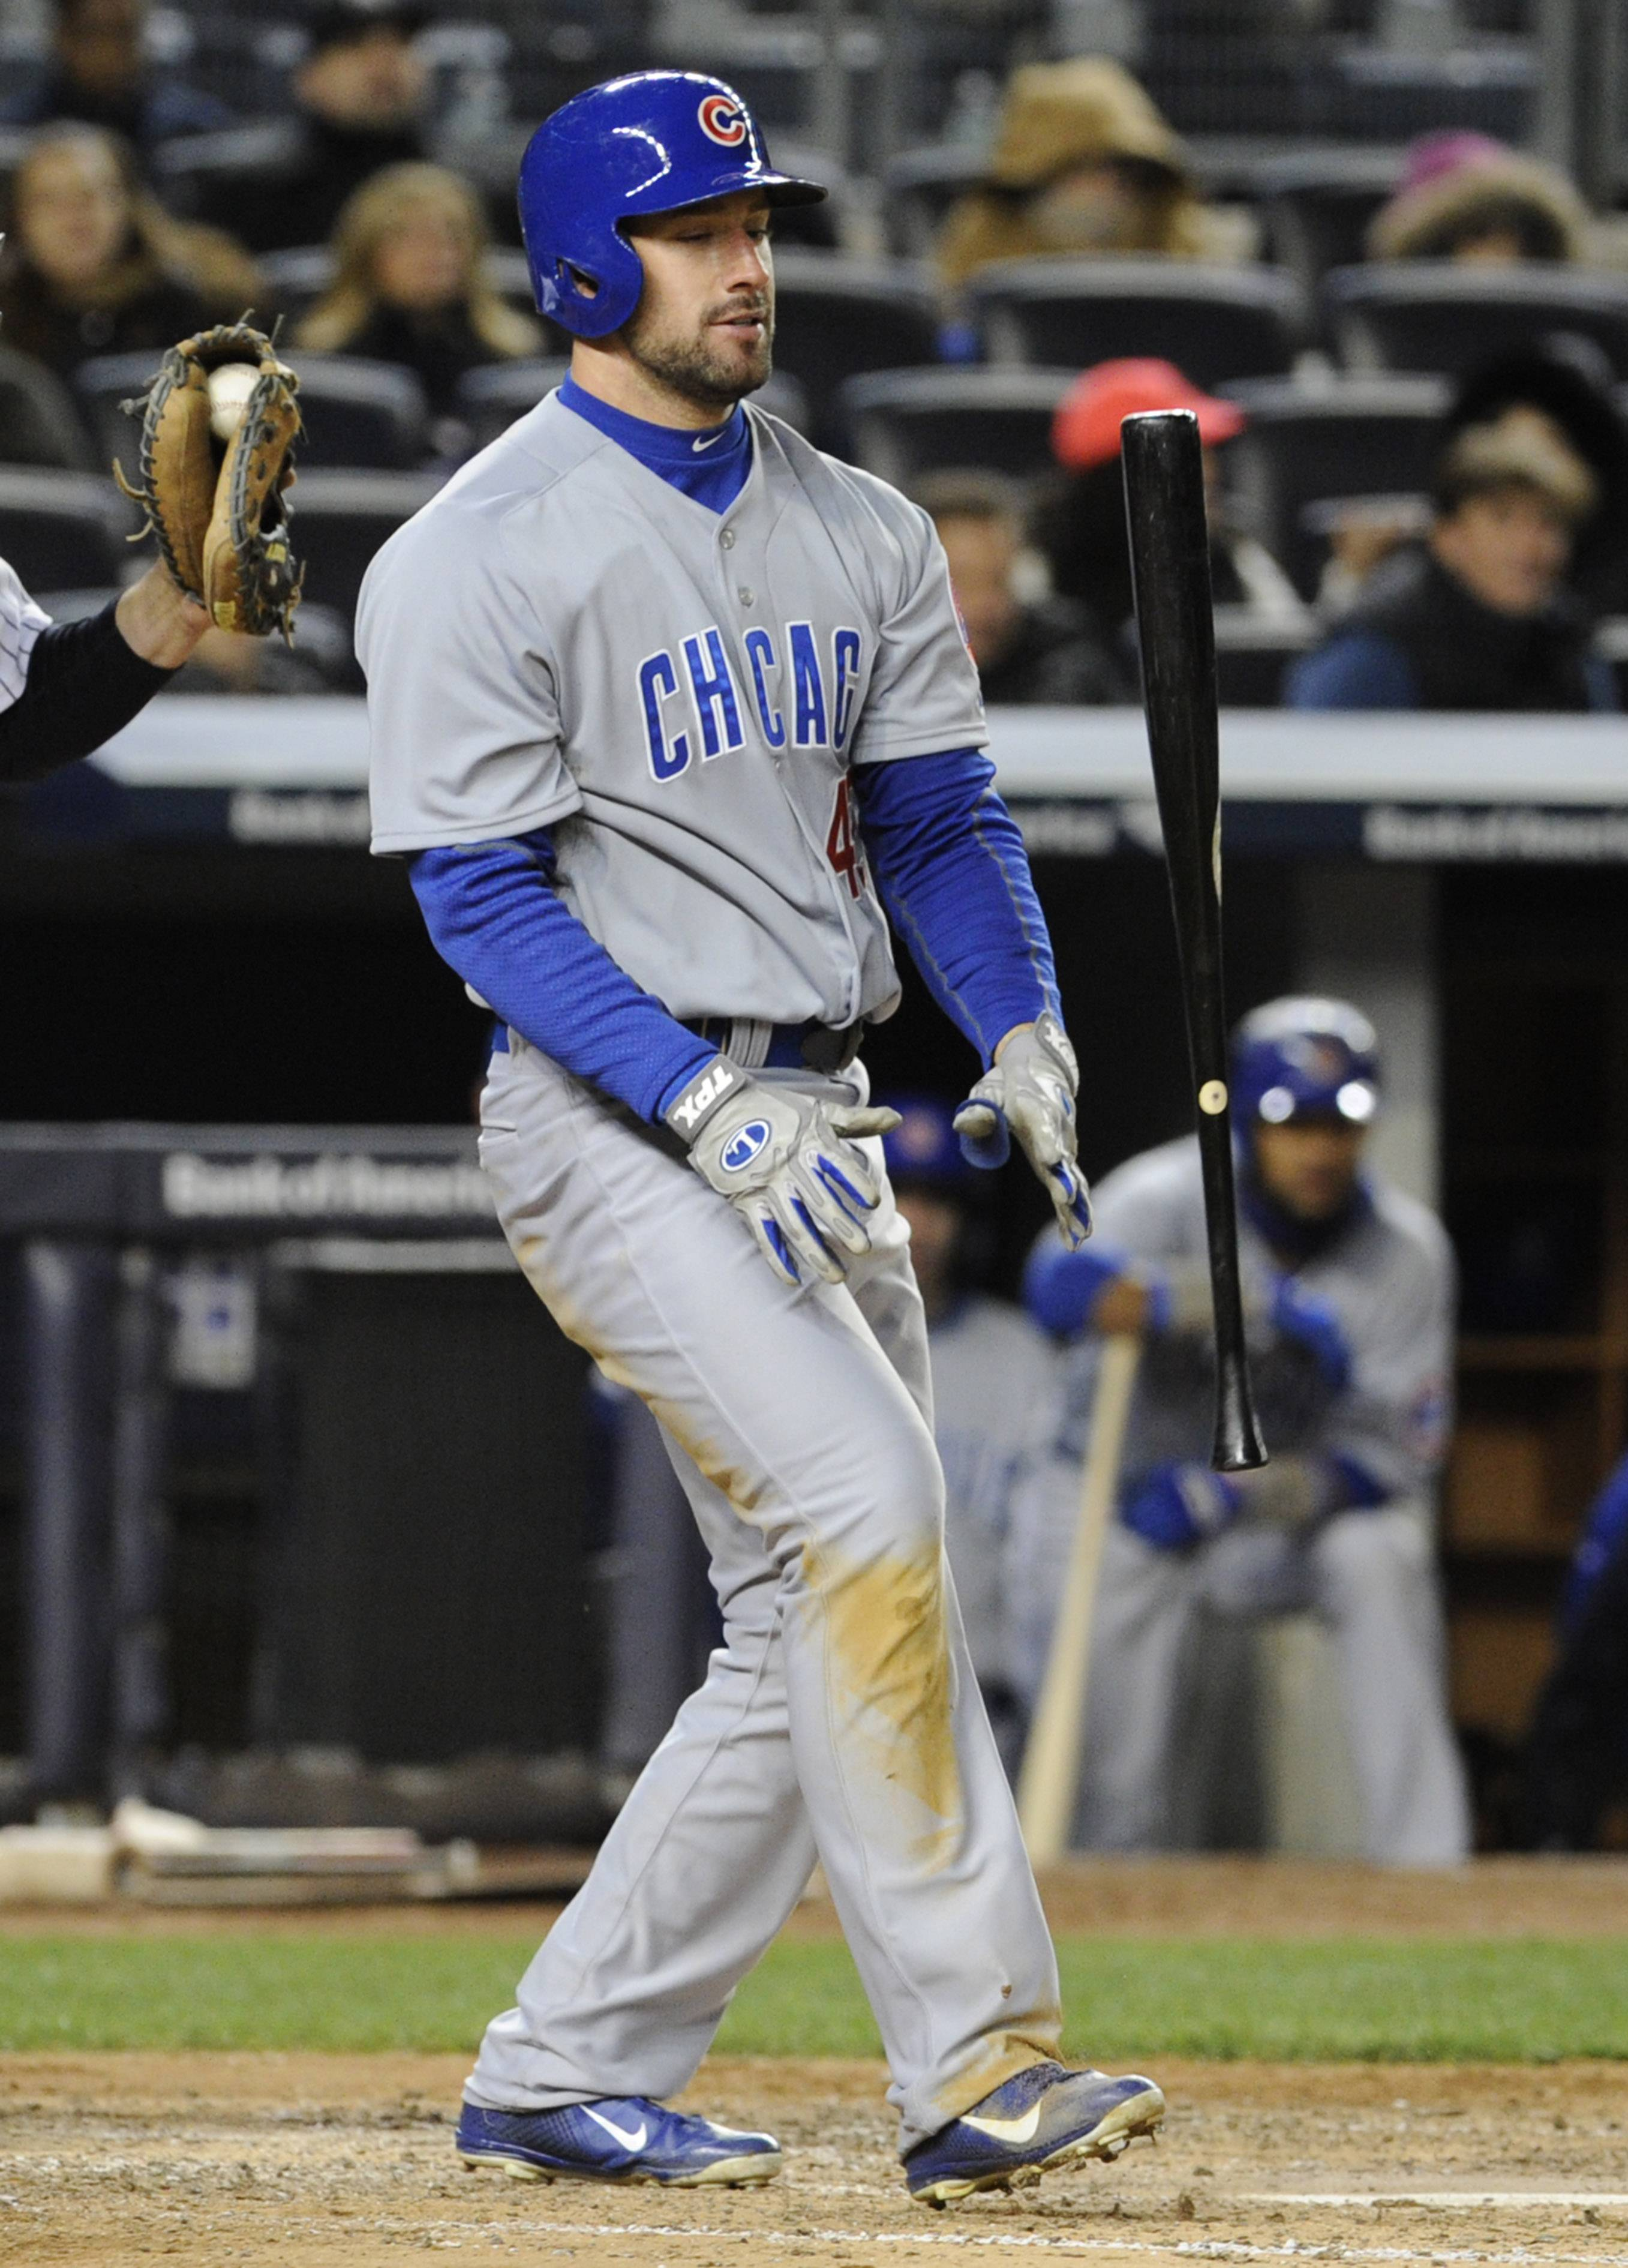 Chicago Cubs' Ryan Kalish flips his bat after striking out during the fifth inning of Game 2 of an interleague baseball doubleheader against the New York Yankees, Wednesday, April 16, 2014, at Yankee Stadium in New York.